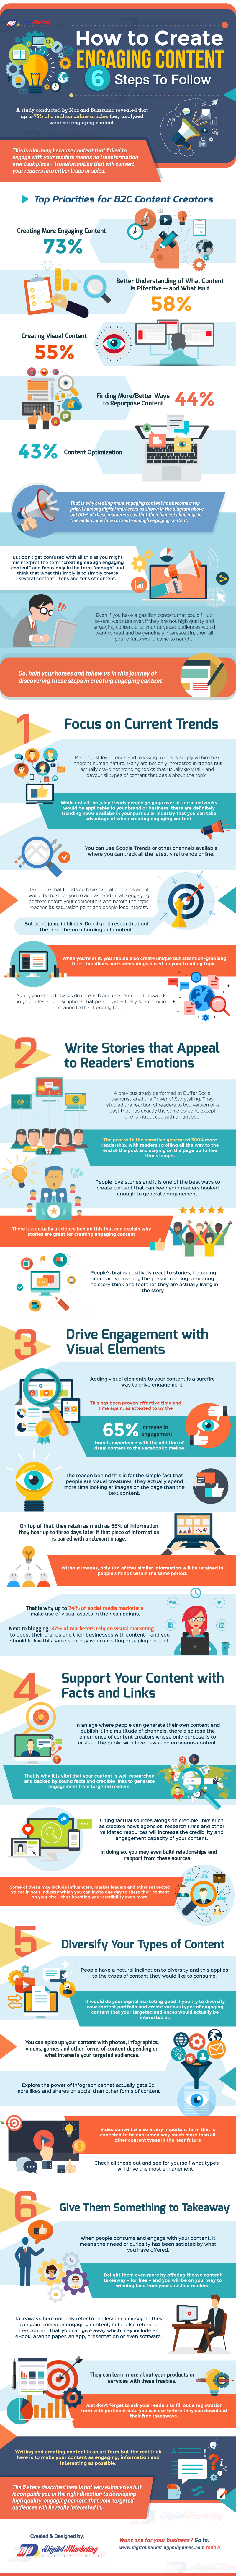 How to Create Engaging Content – 6 Steps to Follow (Infographic) - An Infographic from Digital Marketing Philippines